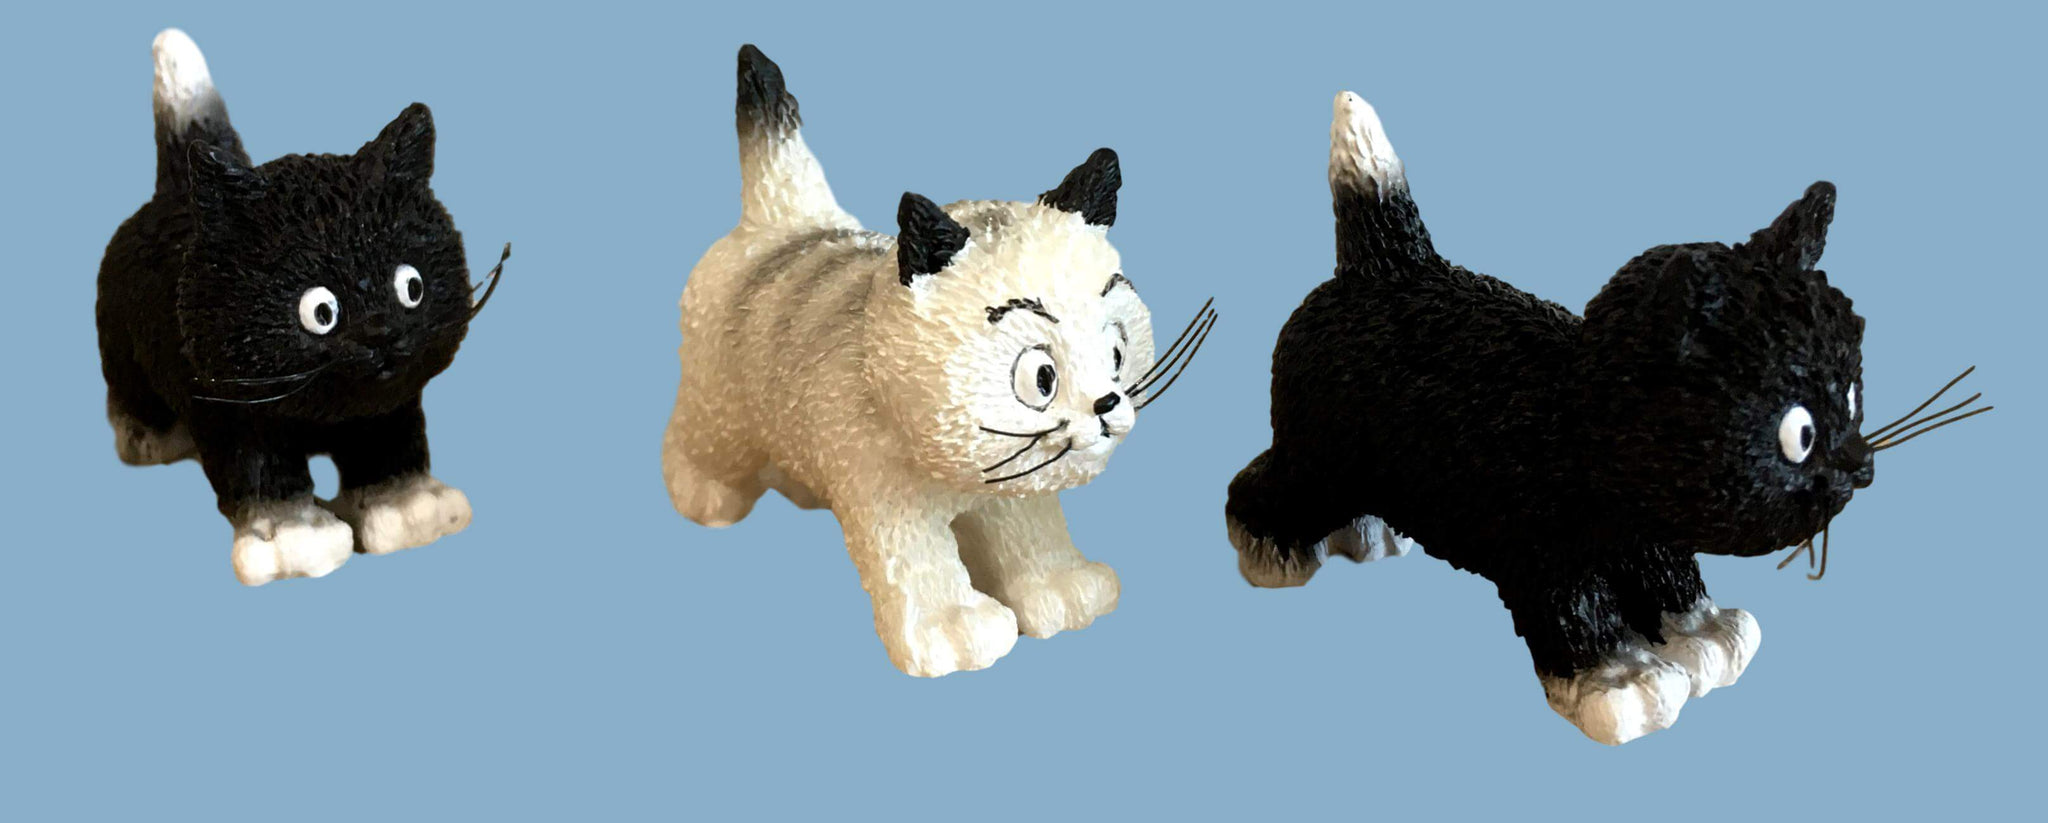 Dubout Cats - The Walk Cat Figurine (Extra Pack)